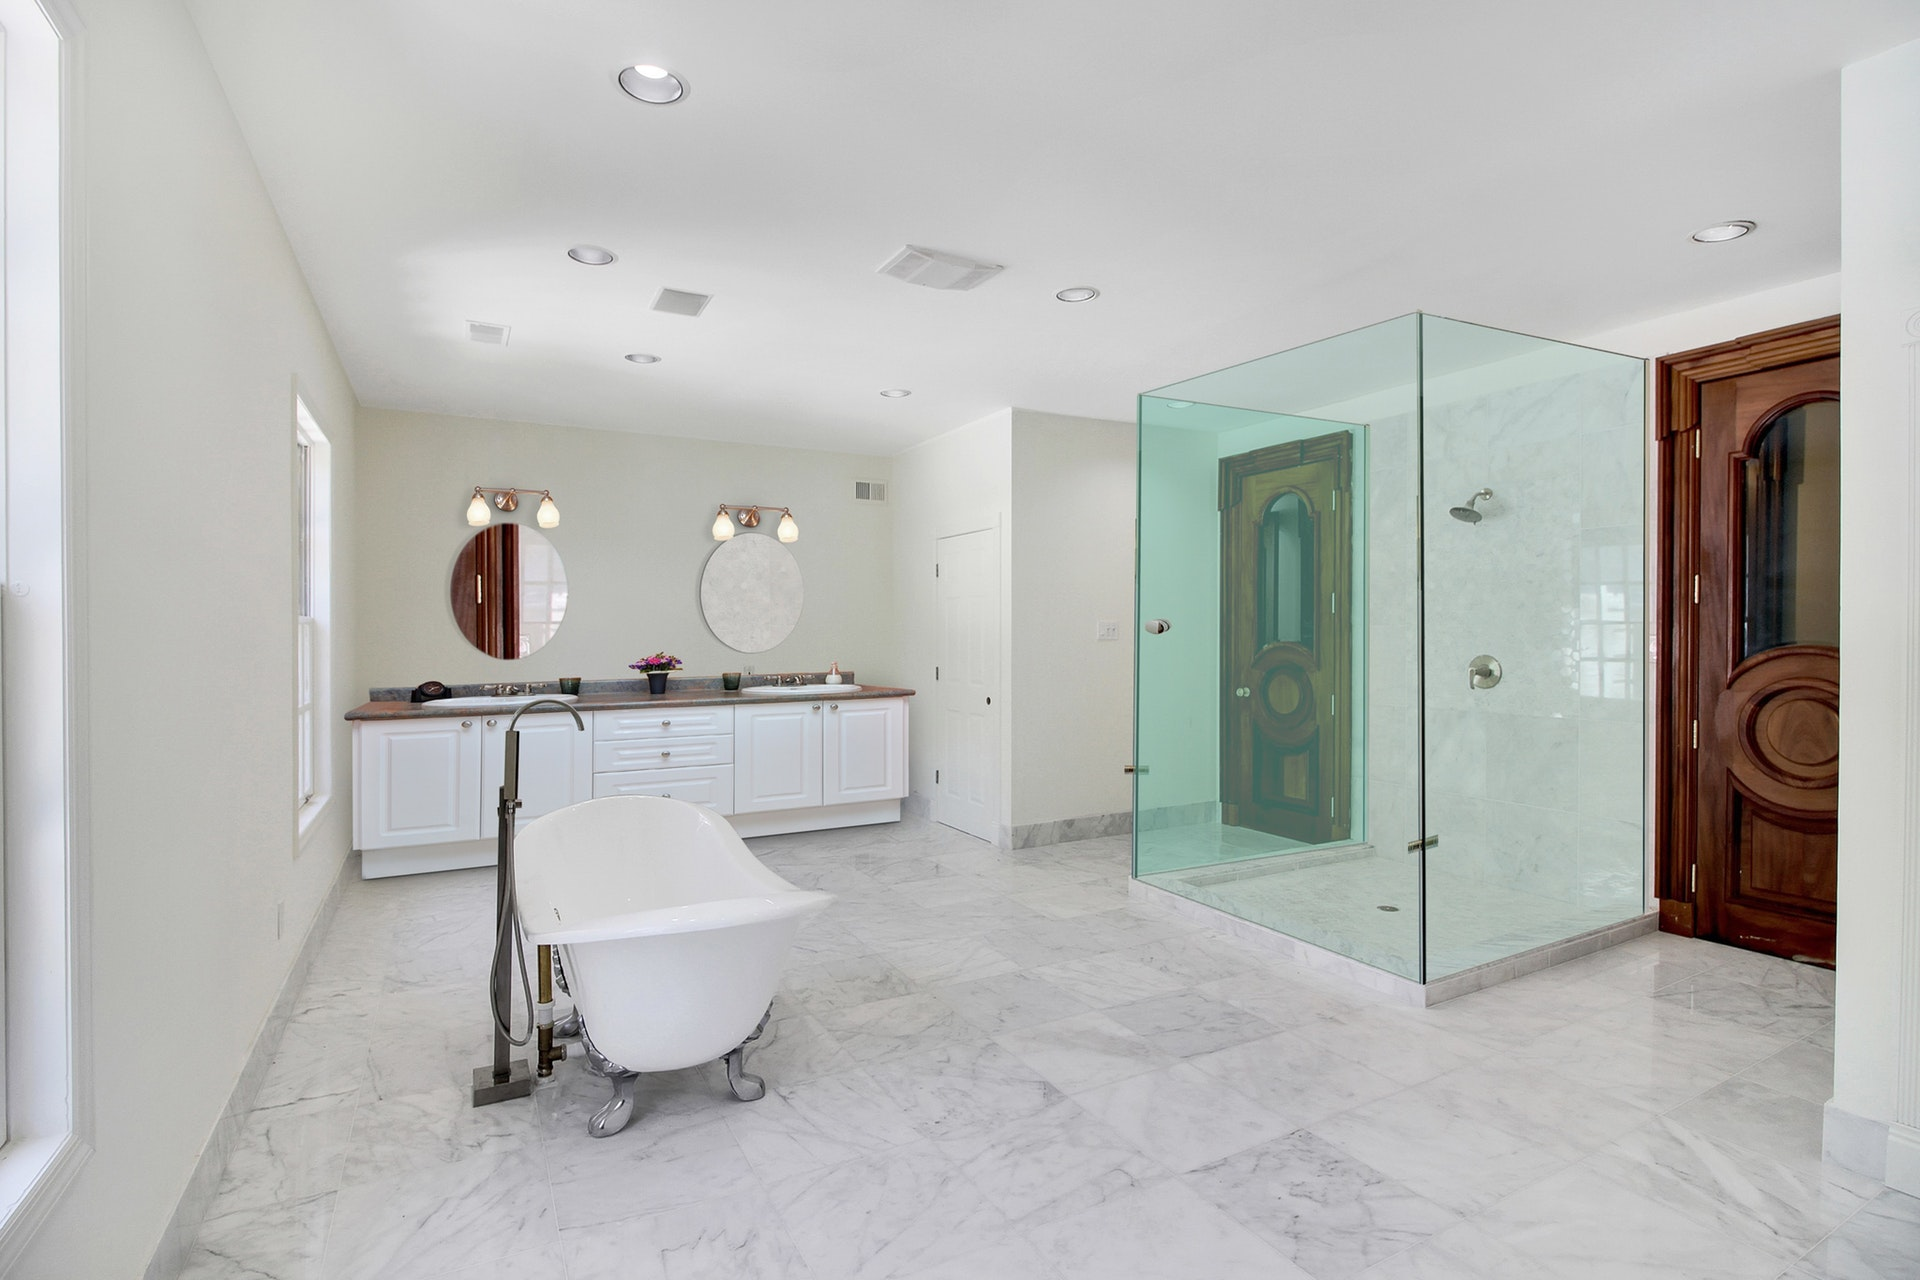 325 South Orange Avenue - Master Bath